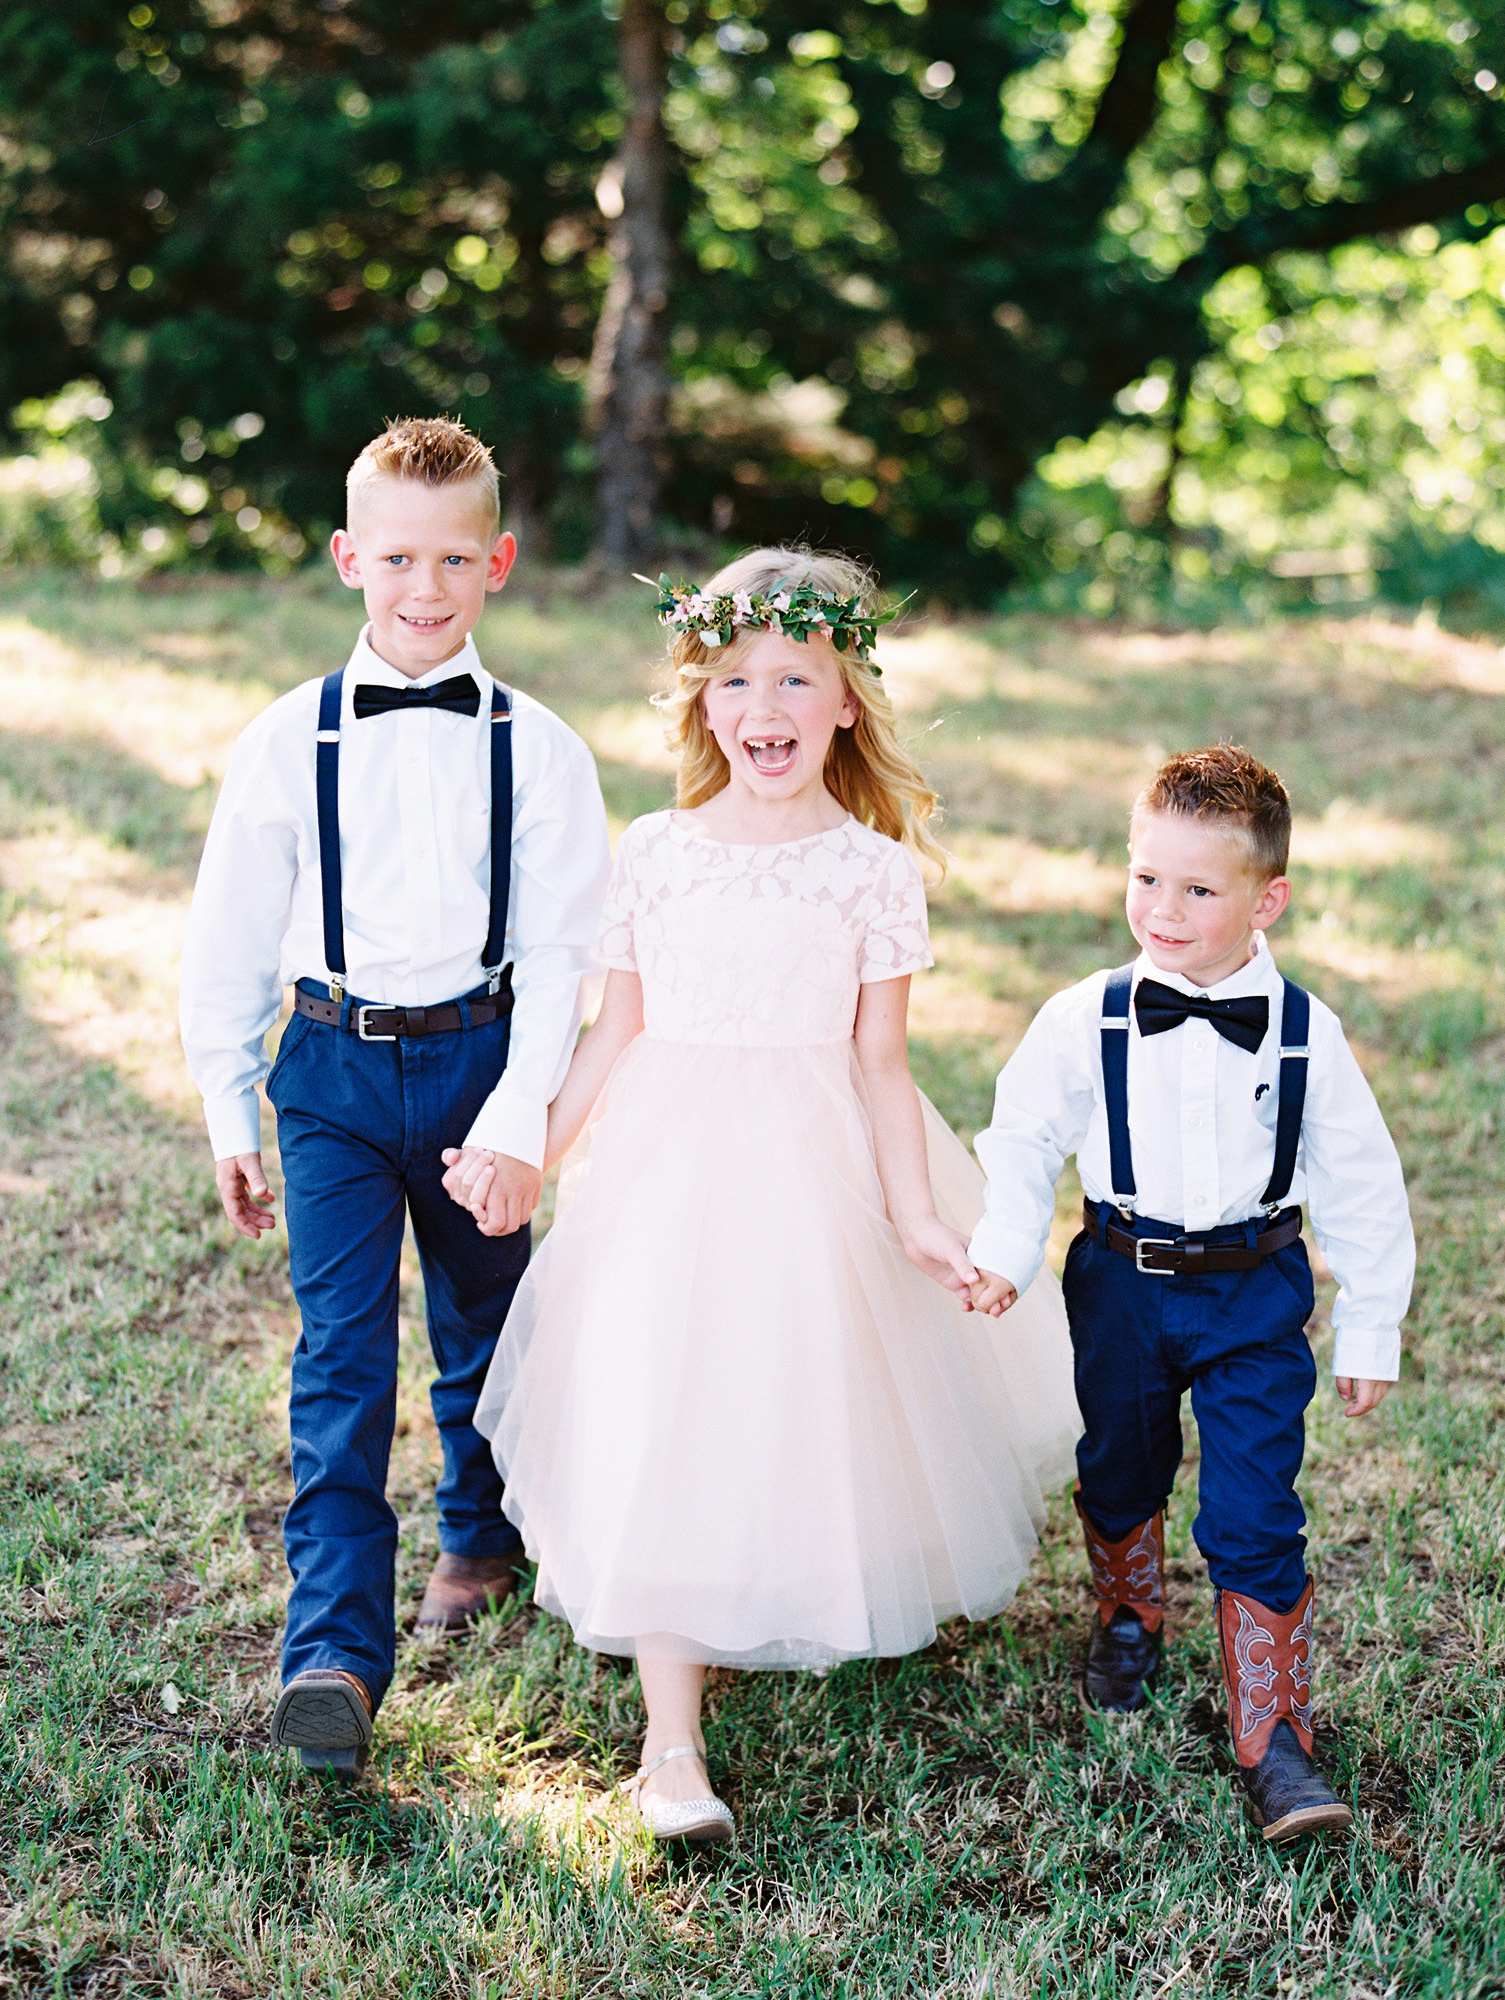 The Prettiest Pink Dresses for Your Flower Girls